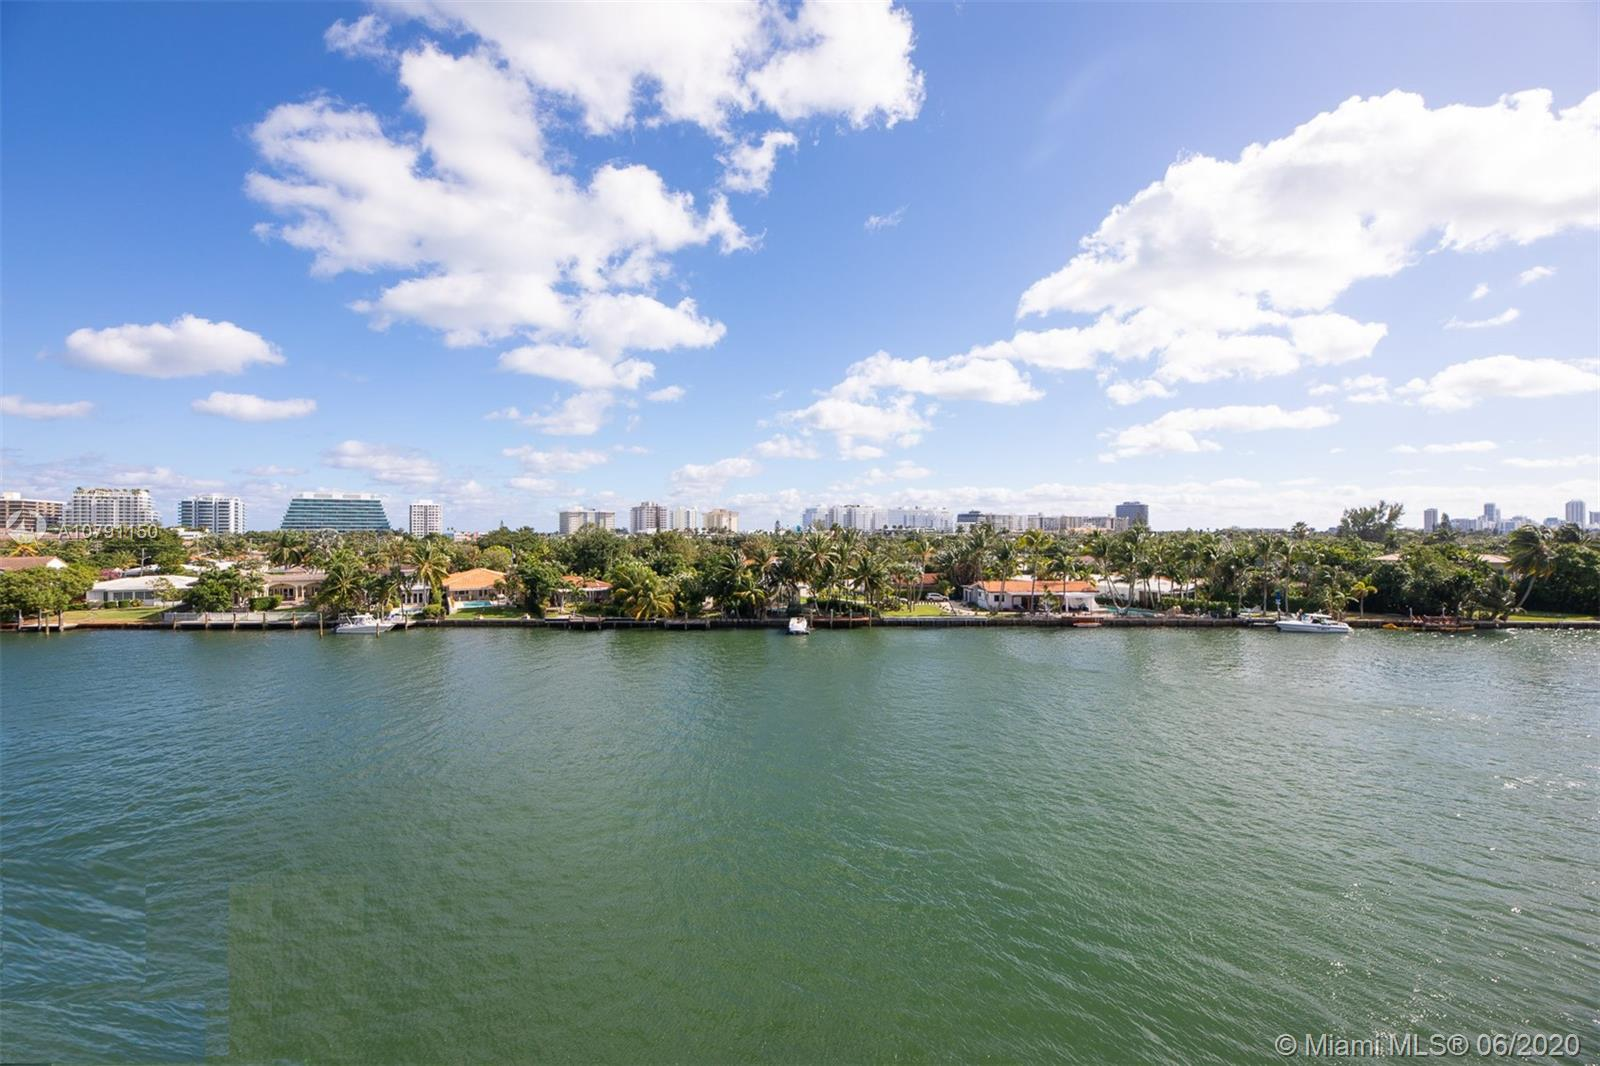 Estate sale ! Great opportunity to own a beautiful and spacious 2bed 2 bath overlooking the waterway in Bay Harbor Islands.  With 1,490/sf, this unit features a split floor plan with ample closets throughout, renovated kitchen and bathrooms, new AC unit, hurricane shutters and comes with one assigned parking space. Excellent location within walking distance to shops, restaurants, Bal Harbour Shops, parks.  This a no longer a 55 and older building so children are welcome.